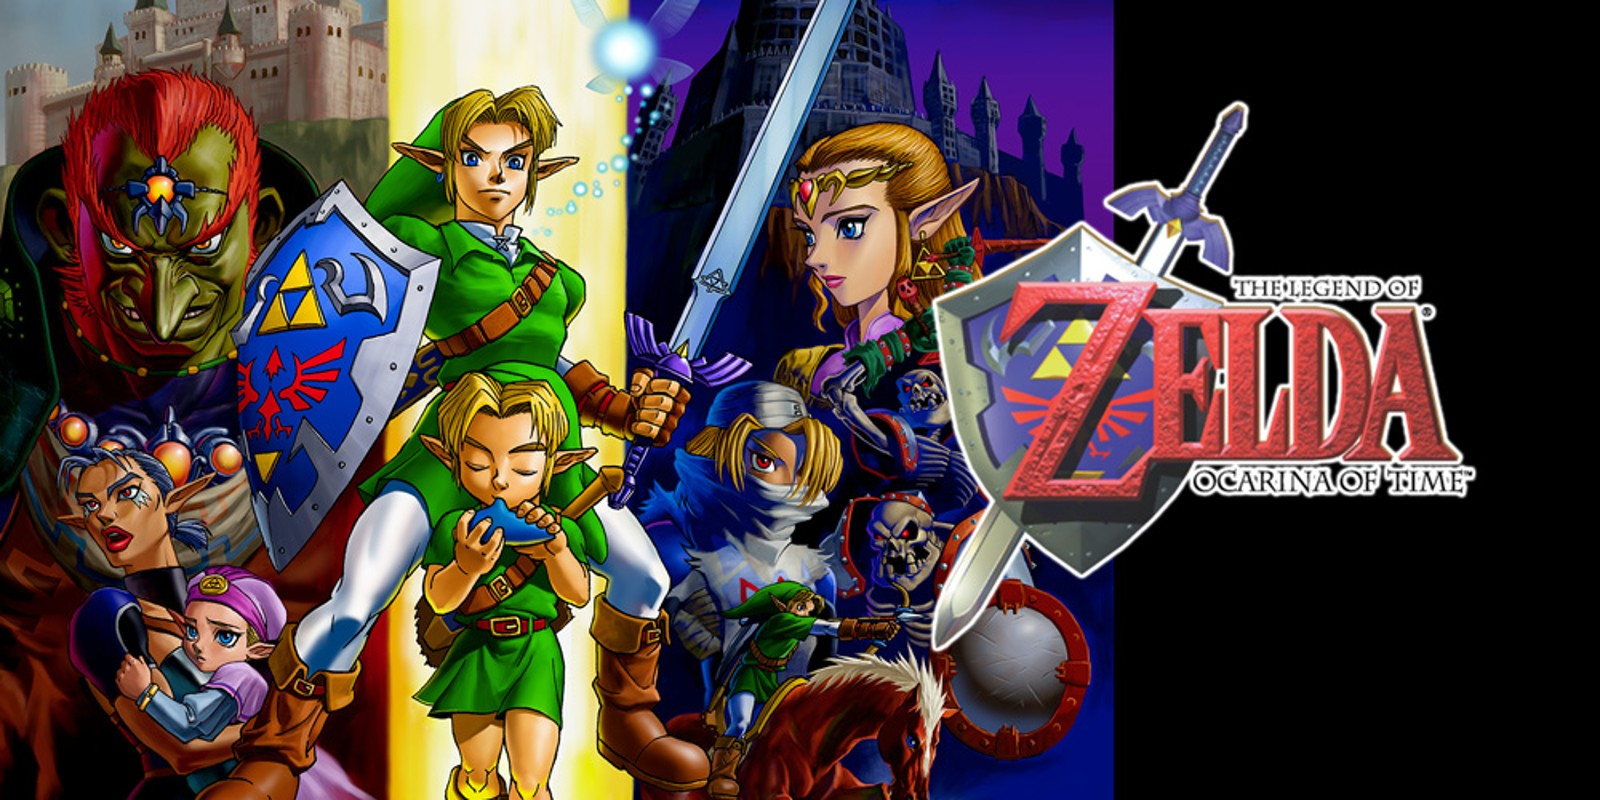 legend of zelda ocarina of time pc download